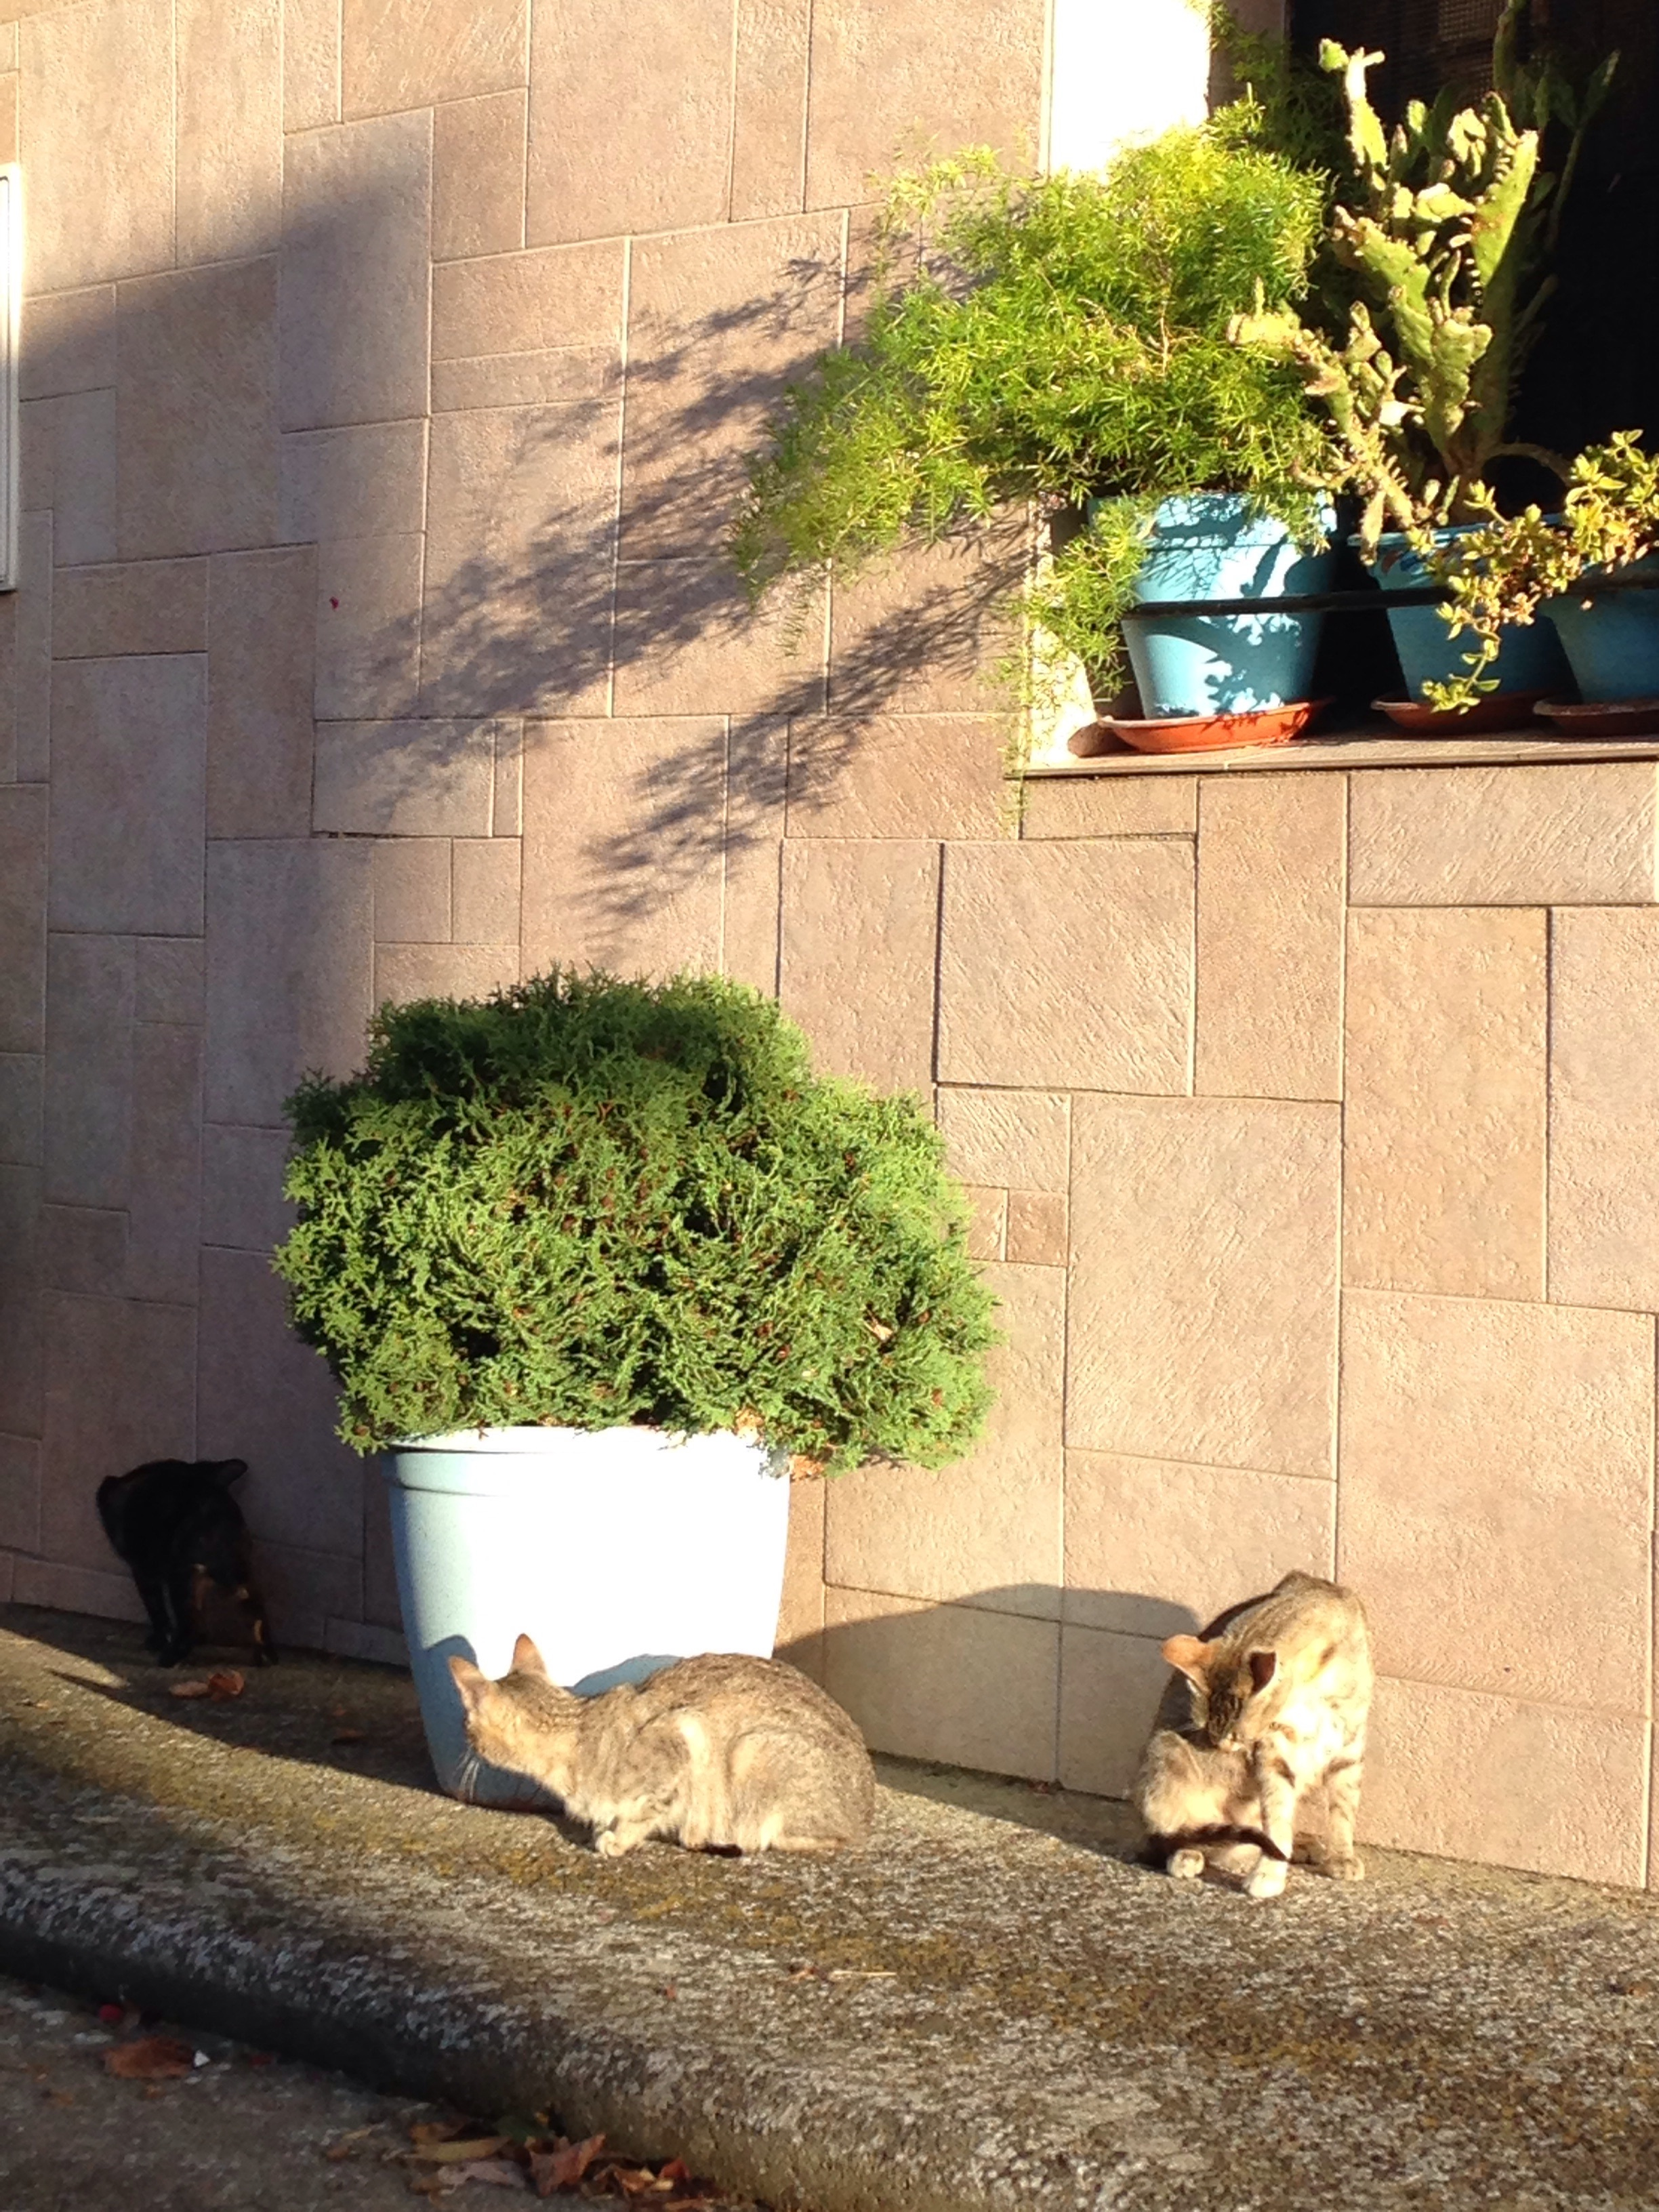 12 Spanish cats equals one of Freya